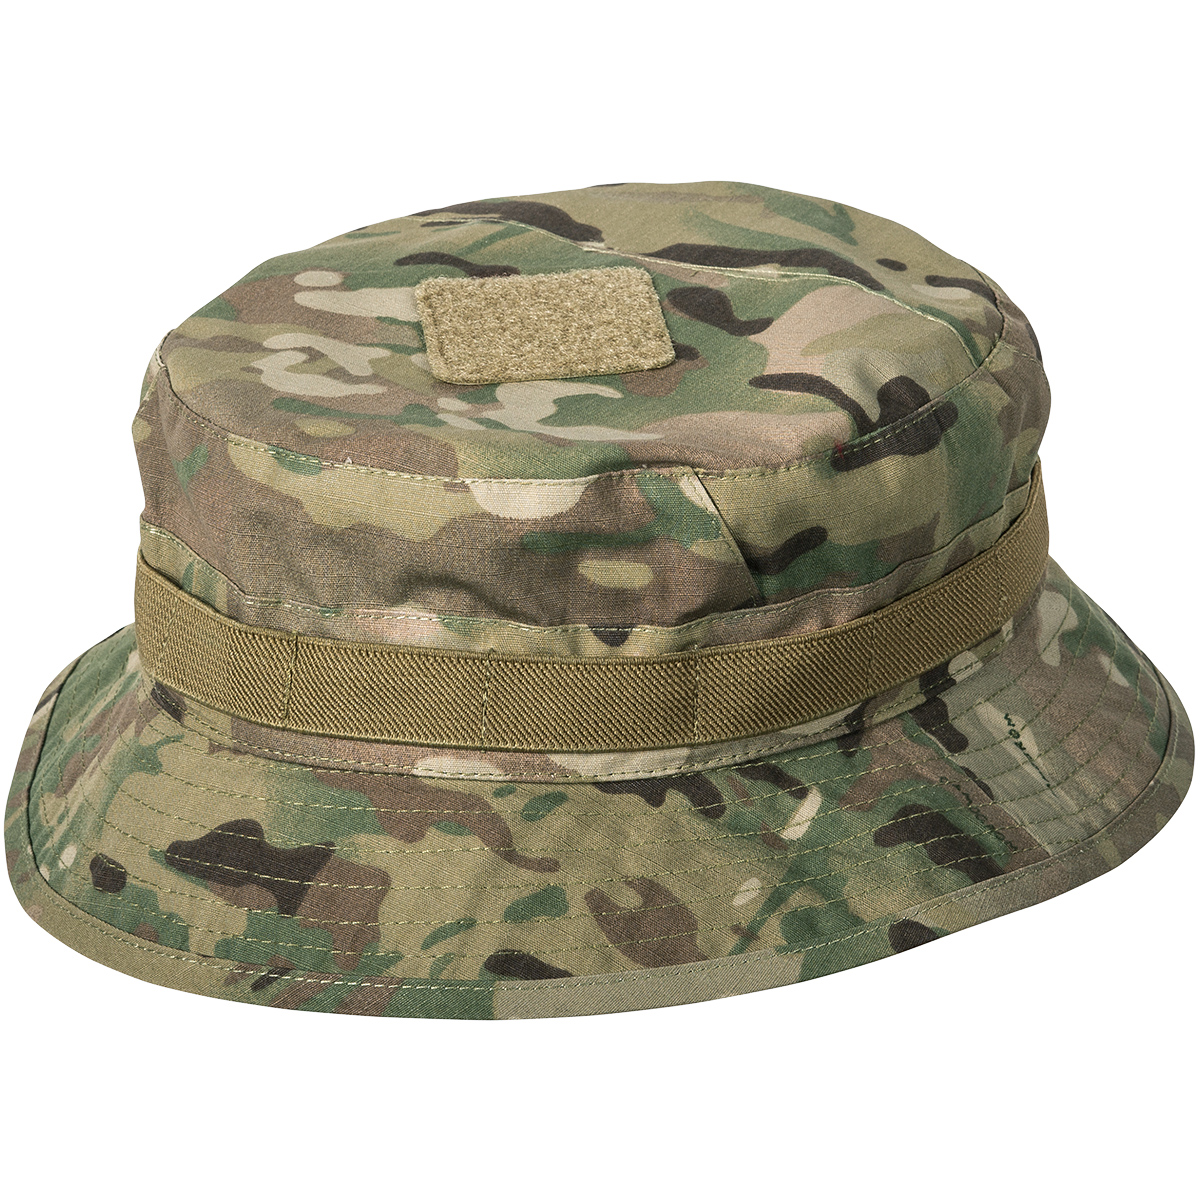 Details about Helikon Tactical Military Cpu Boonie Hat Hunting Ripstop Sun  Cap Camogrom Camo d90bd9e48cd4